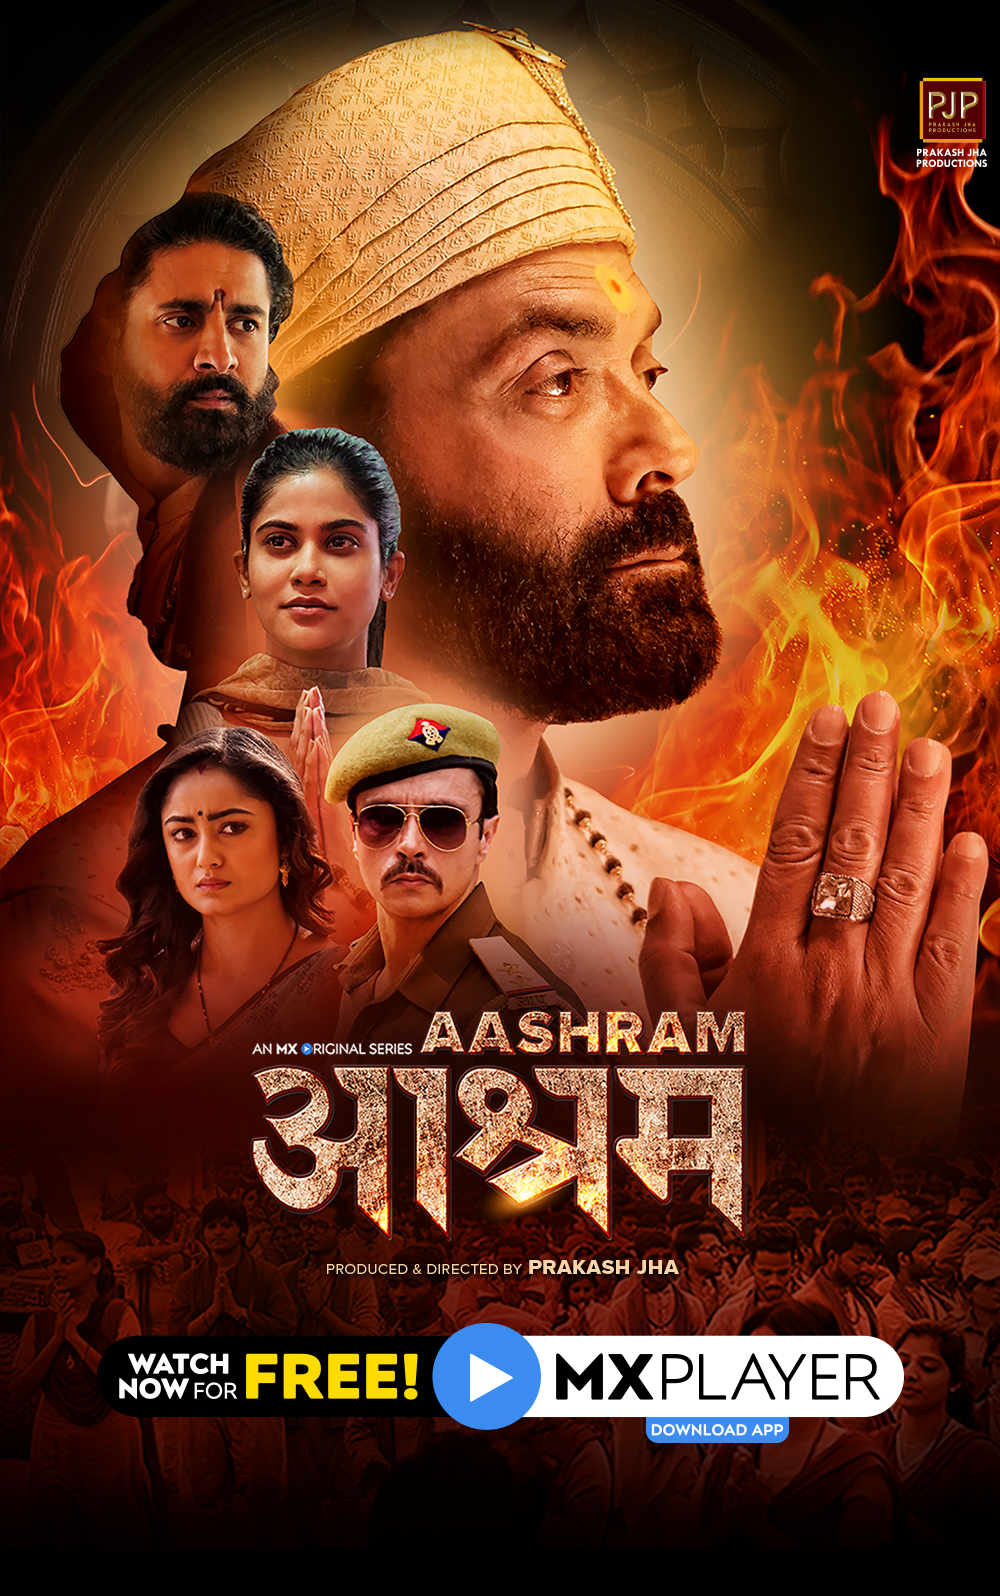 Aashram Chapter 2 The Dark Side 2020 S02 Hindi MX Player Original Web Series Official Trailer 1080p HDRip Free Download